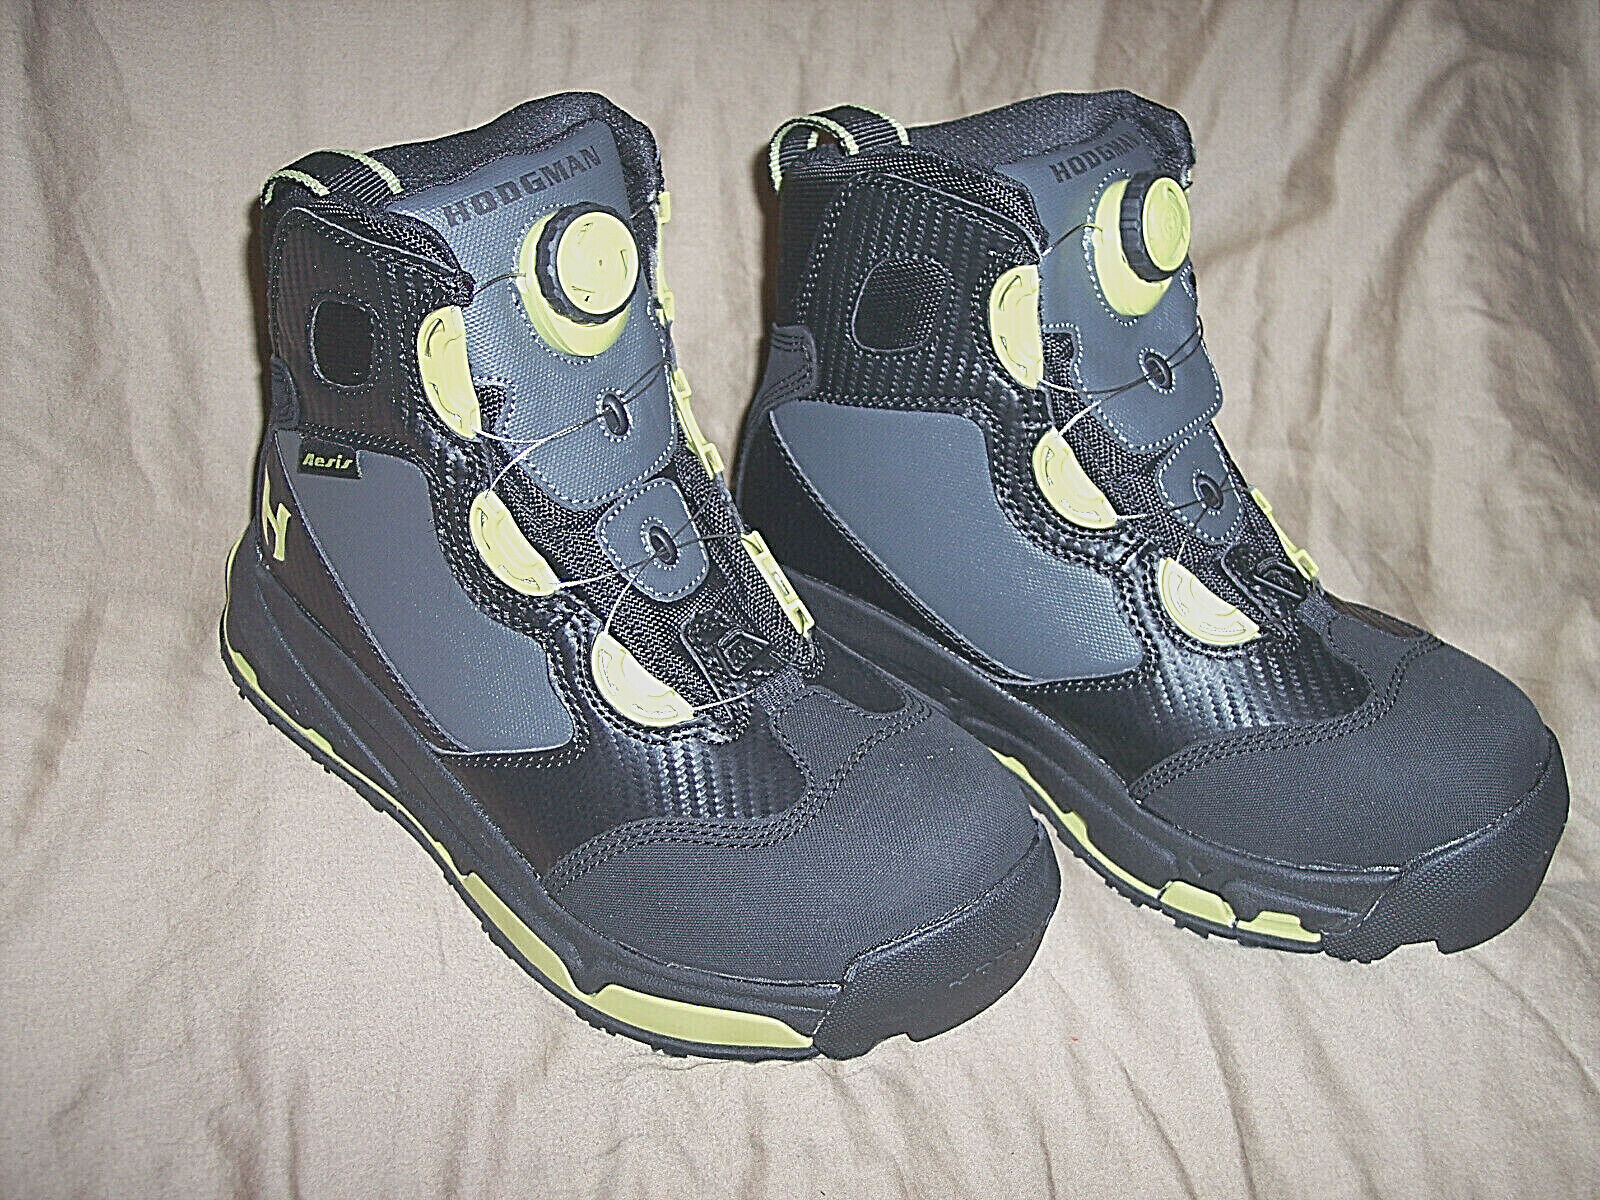 Hodgman Aesis shoes  Wading shoes Mens 9 Water shoes Fishing Wading Boots  180  10 days return